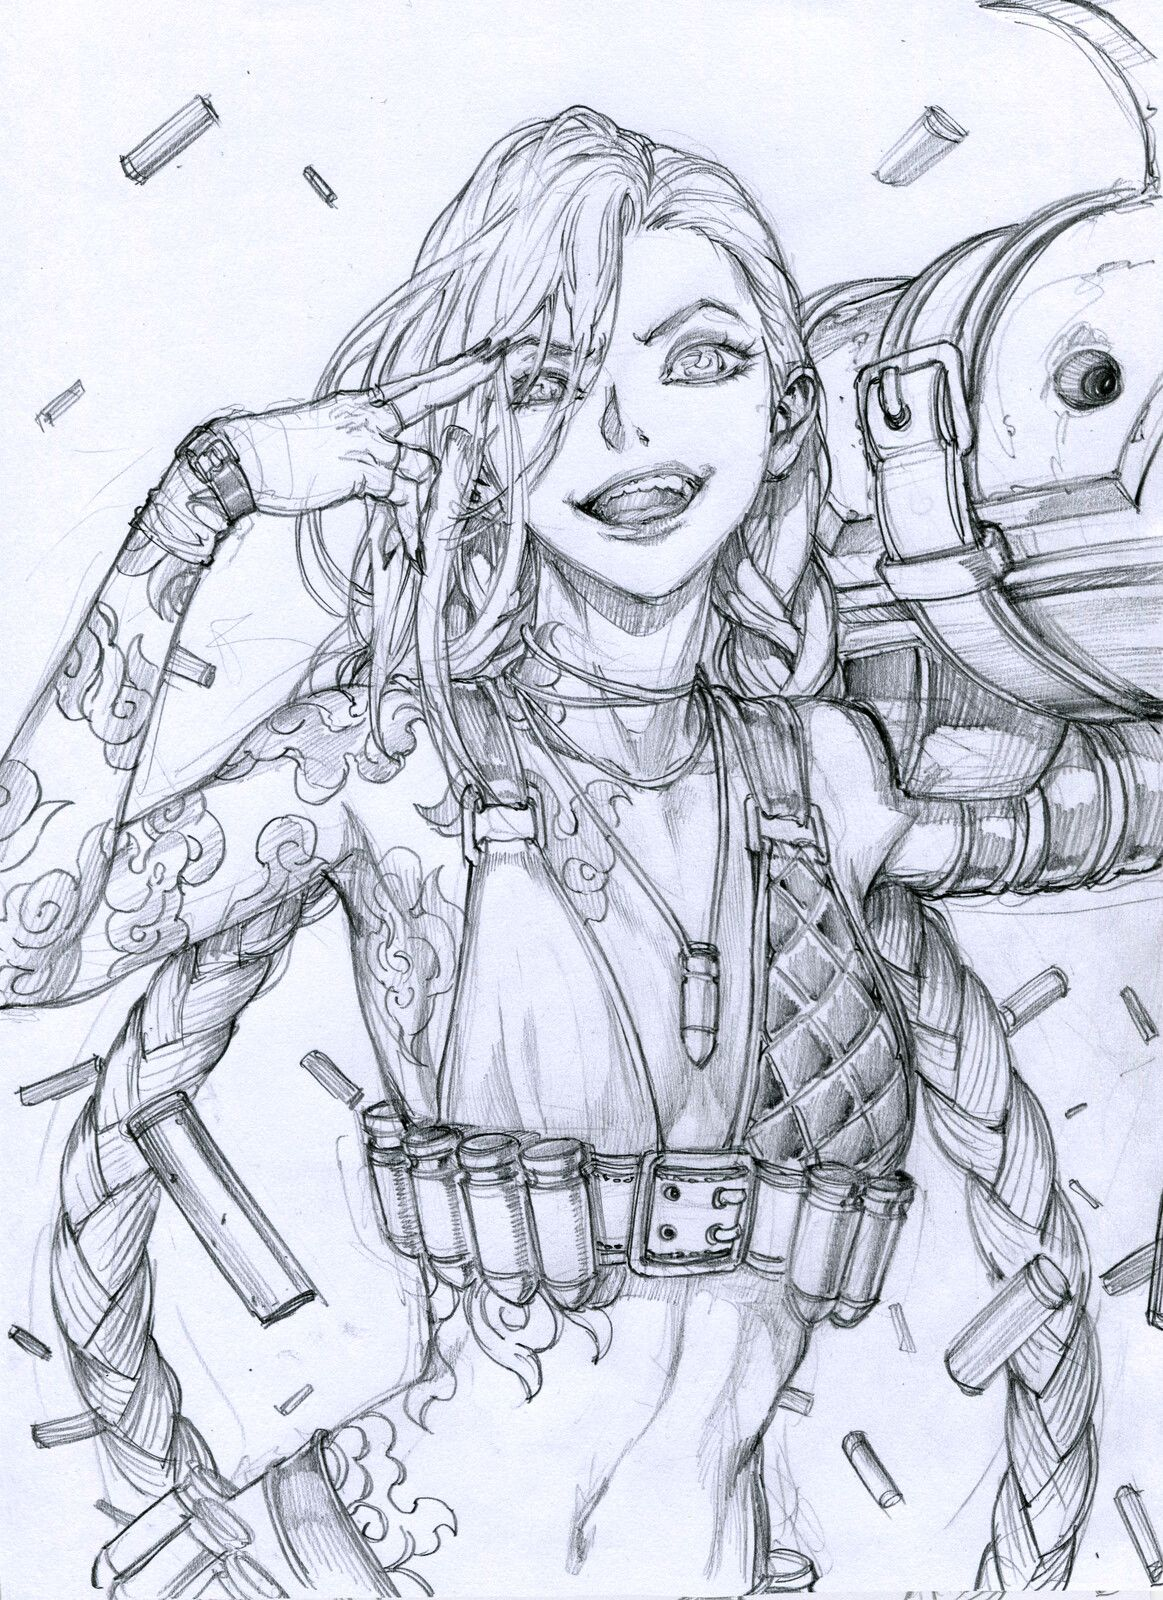 Lol Jinx Stato On Artstation At Https Www Artstation Com Artwork Kdnn3x Legend Drawing Jinx League Of Legends Character Design Sketch league is a drawing game where gamers and friends can test their drawing skills and knowledge about some of their. legend drawing jinx league